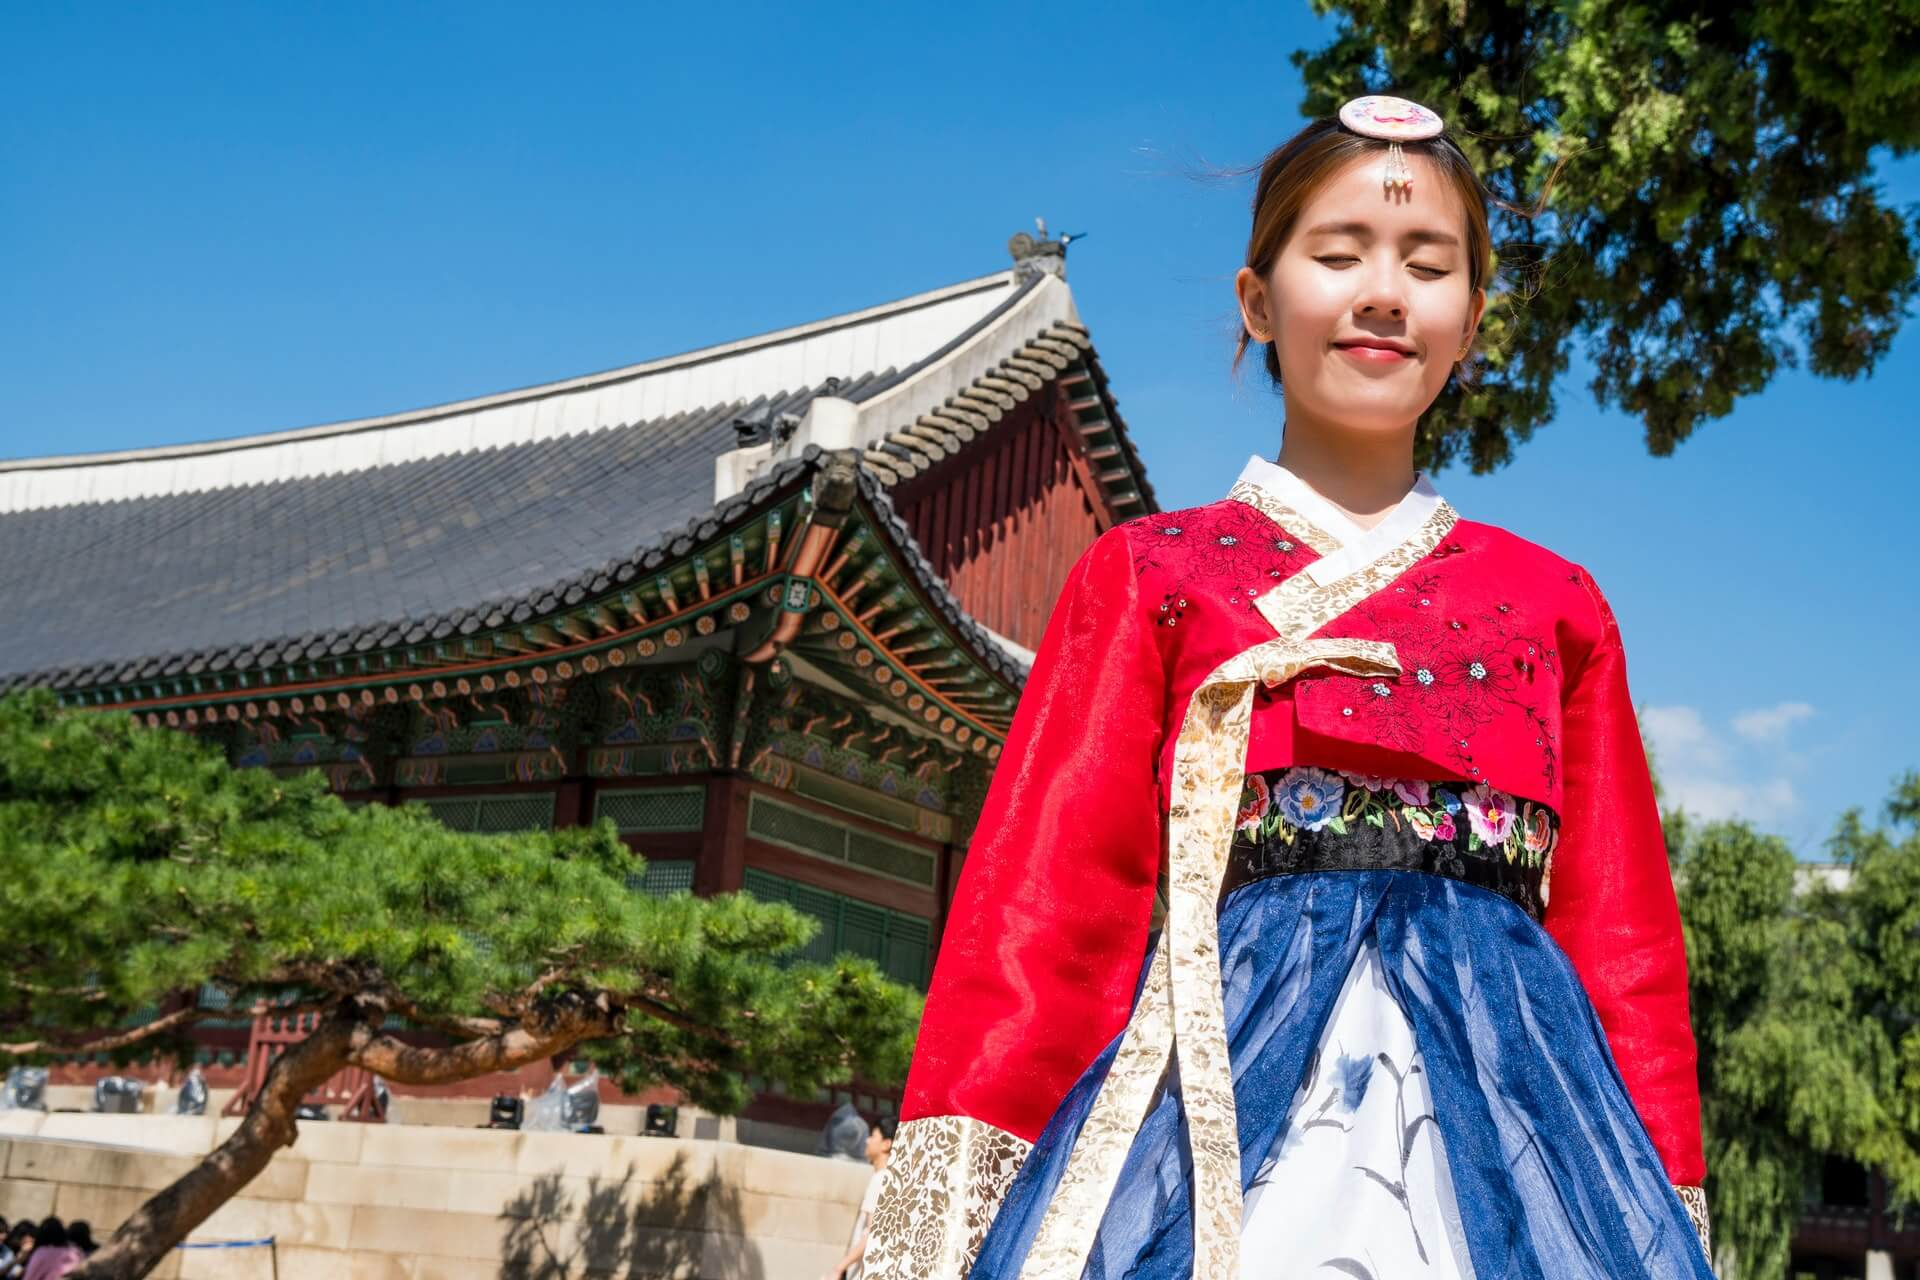 A local South Korean woman in traditional dress at a palace in Seoul